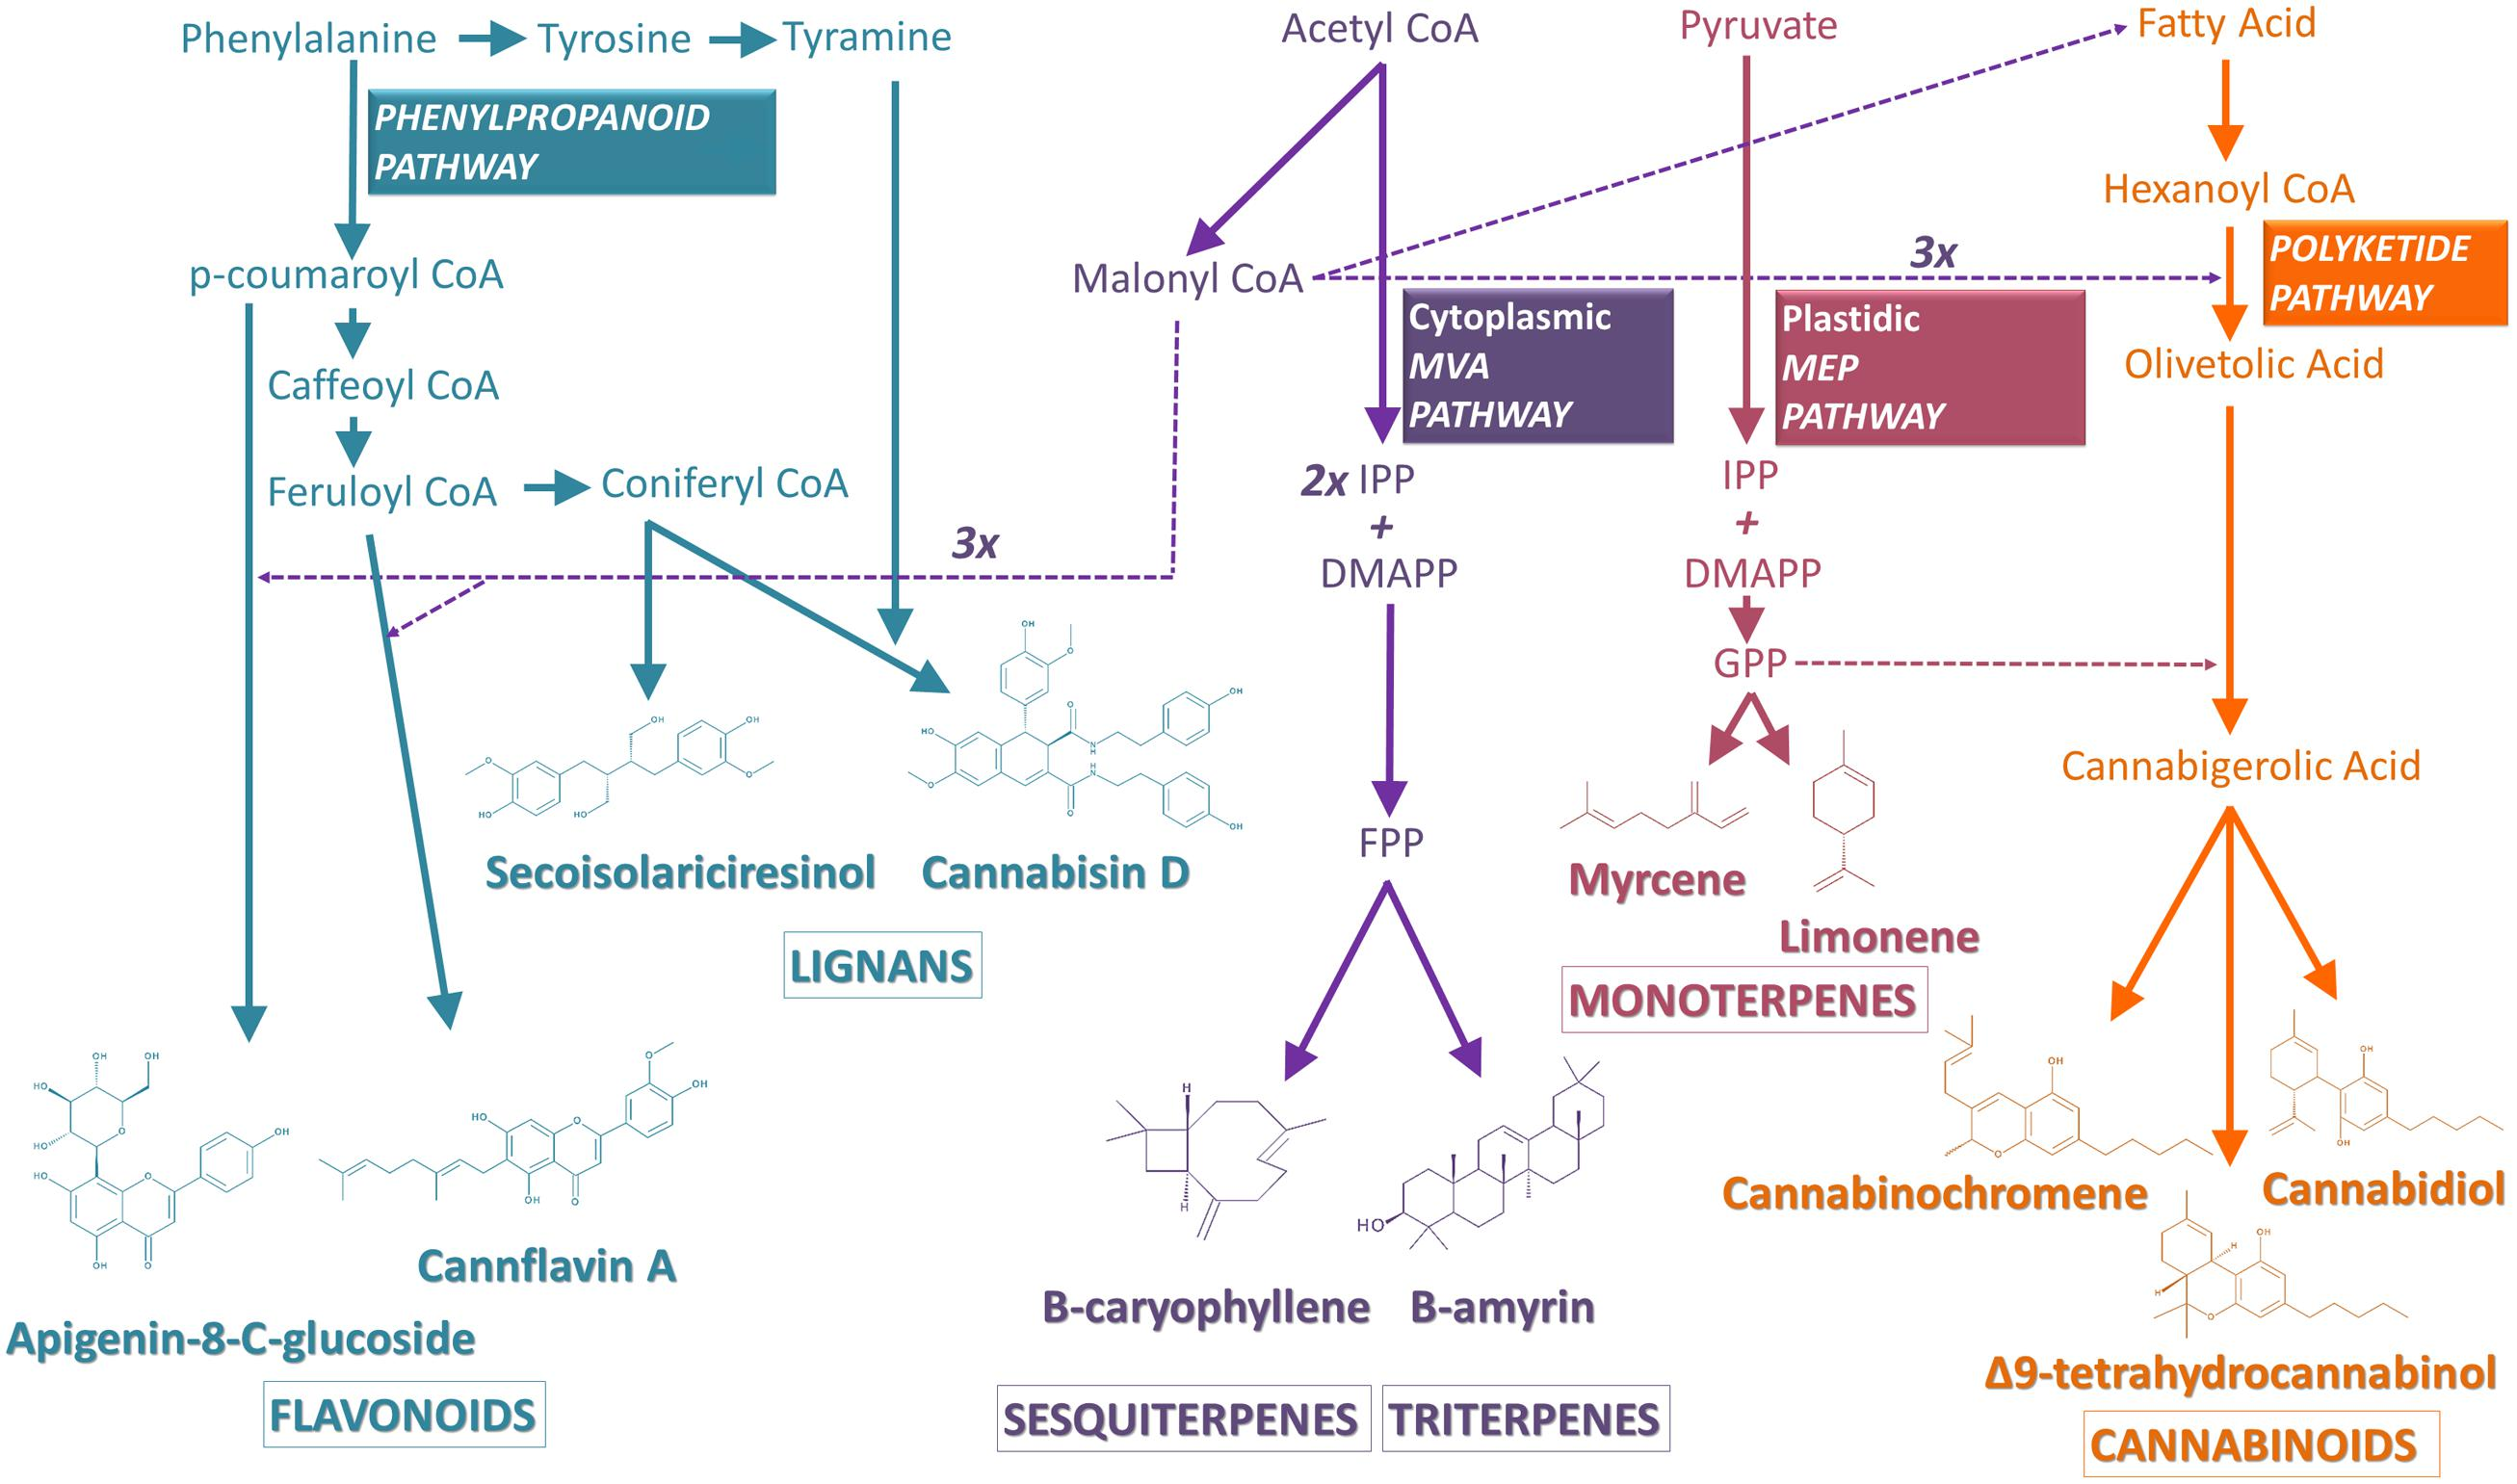 Frontiers | Cannabis sativa: The Plant of the Thousand and One